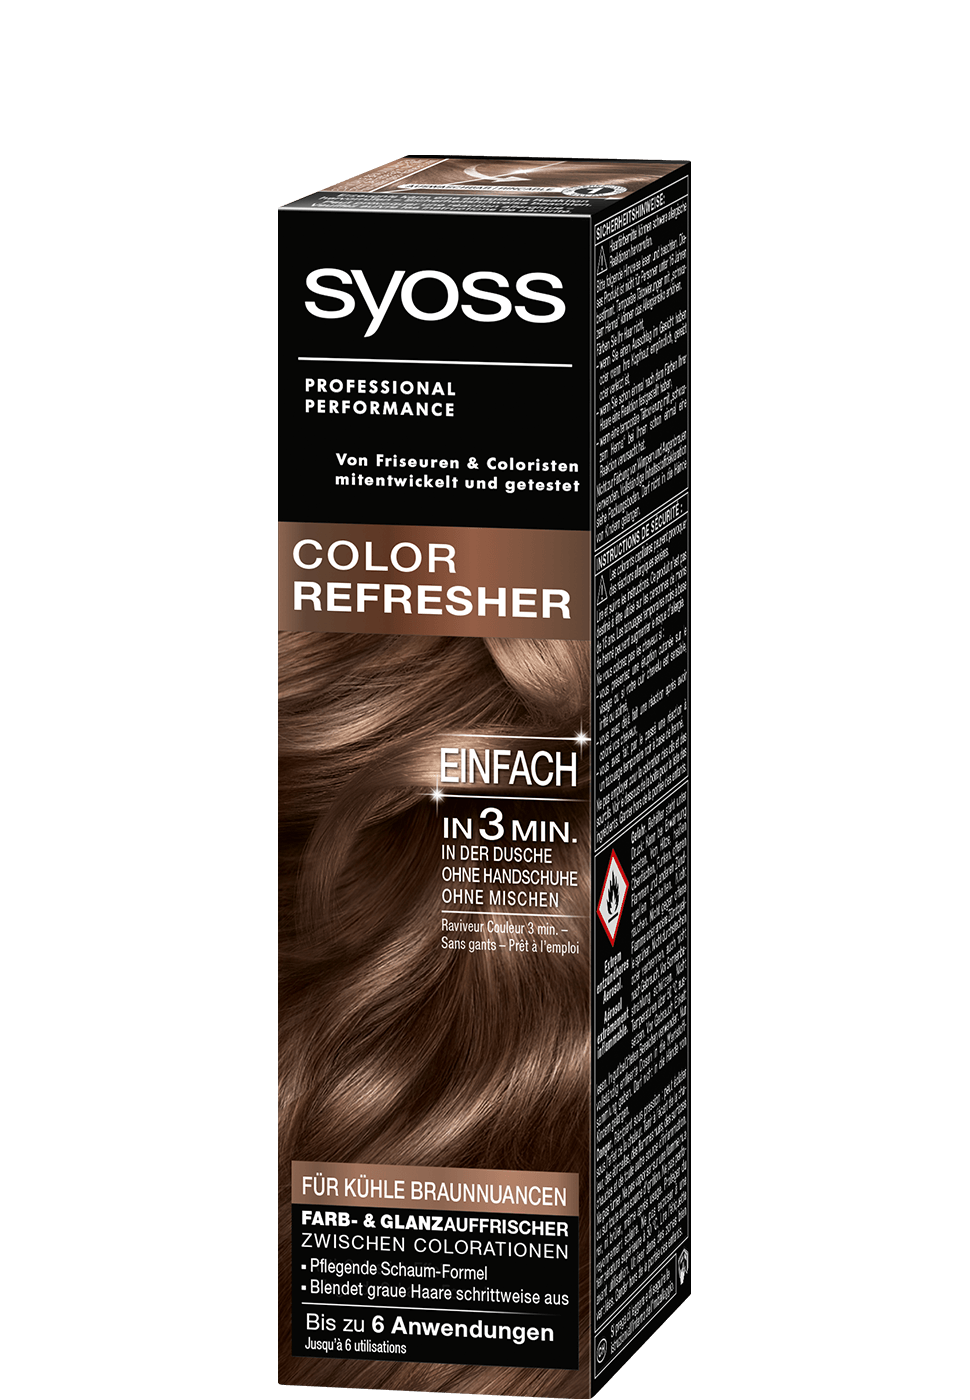 Syoss Color Refresher Kühle Braunnuancen